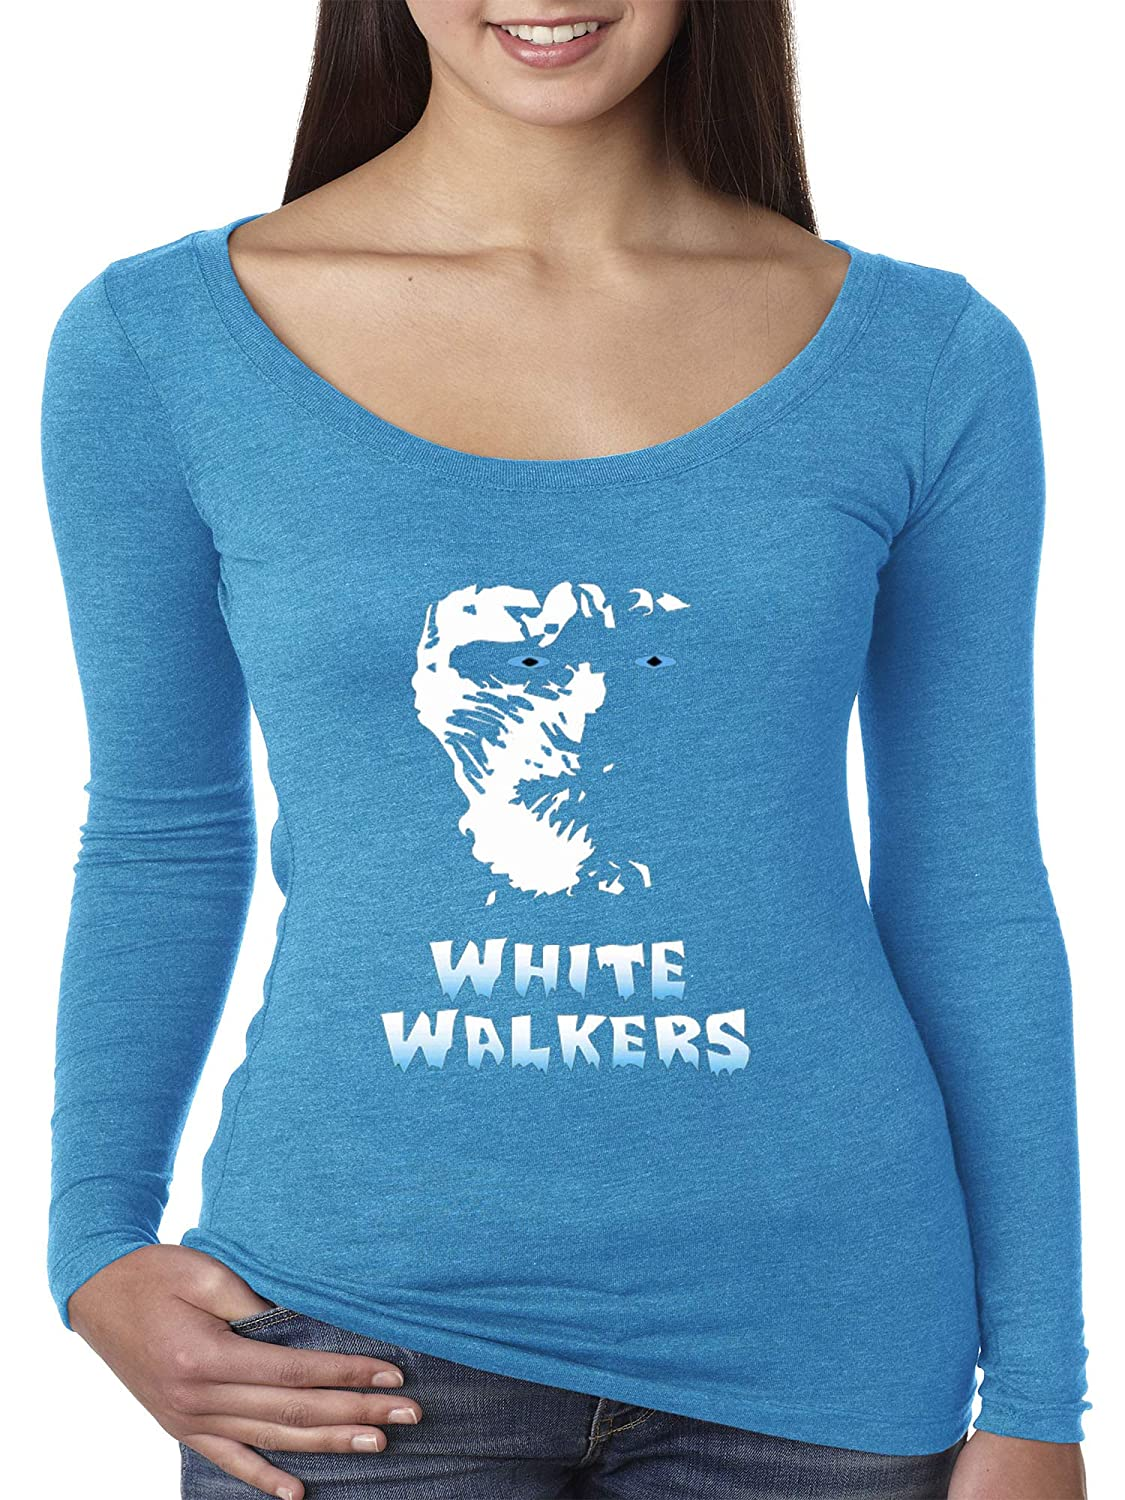 Turquoise Trendy USA 493  Women's Long Sleeve TShirt White Walkers Game of Thrones